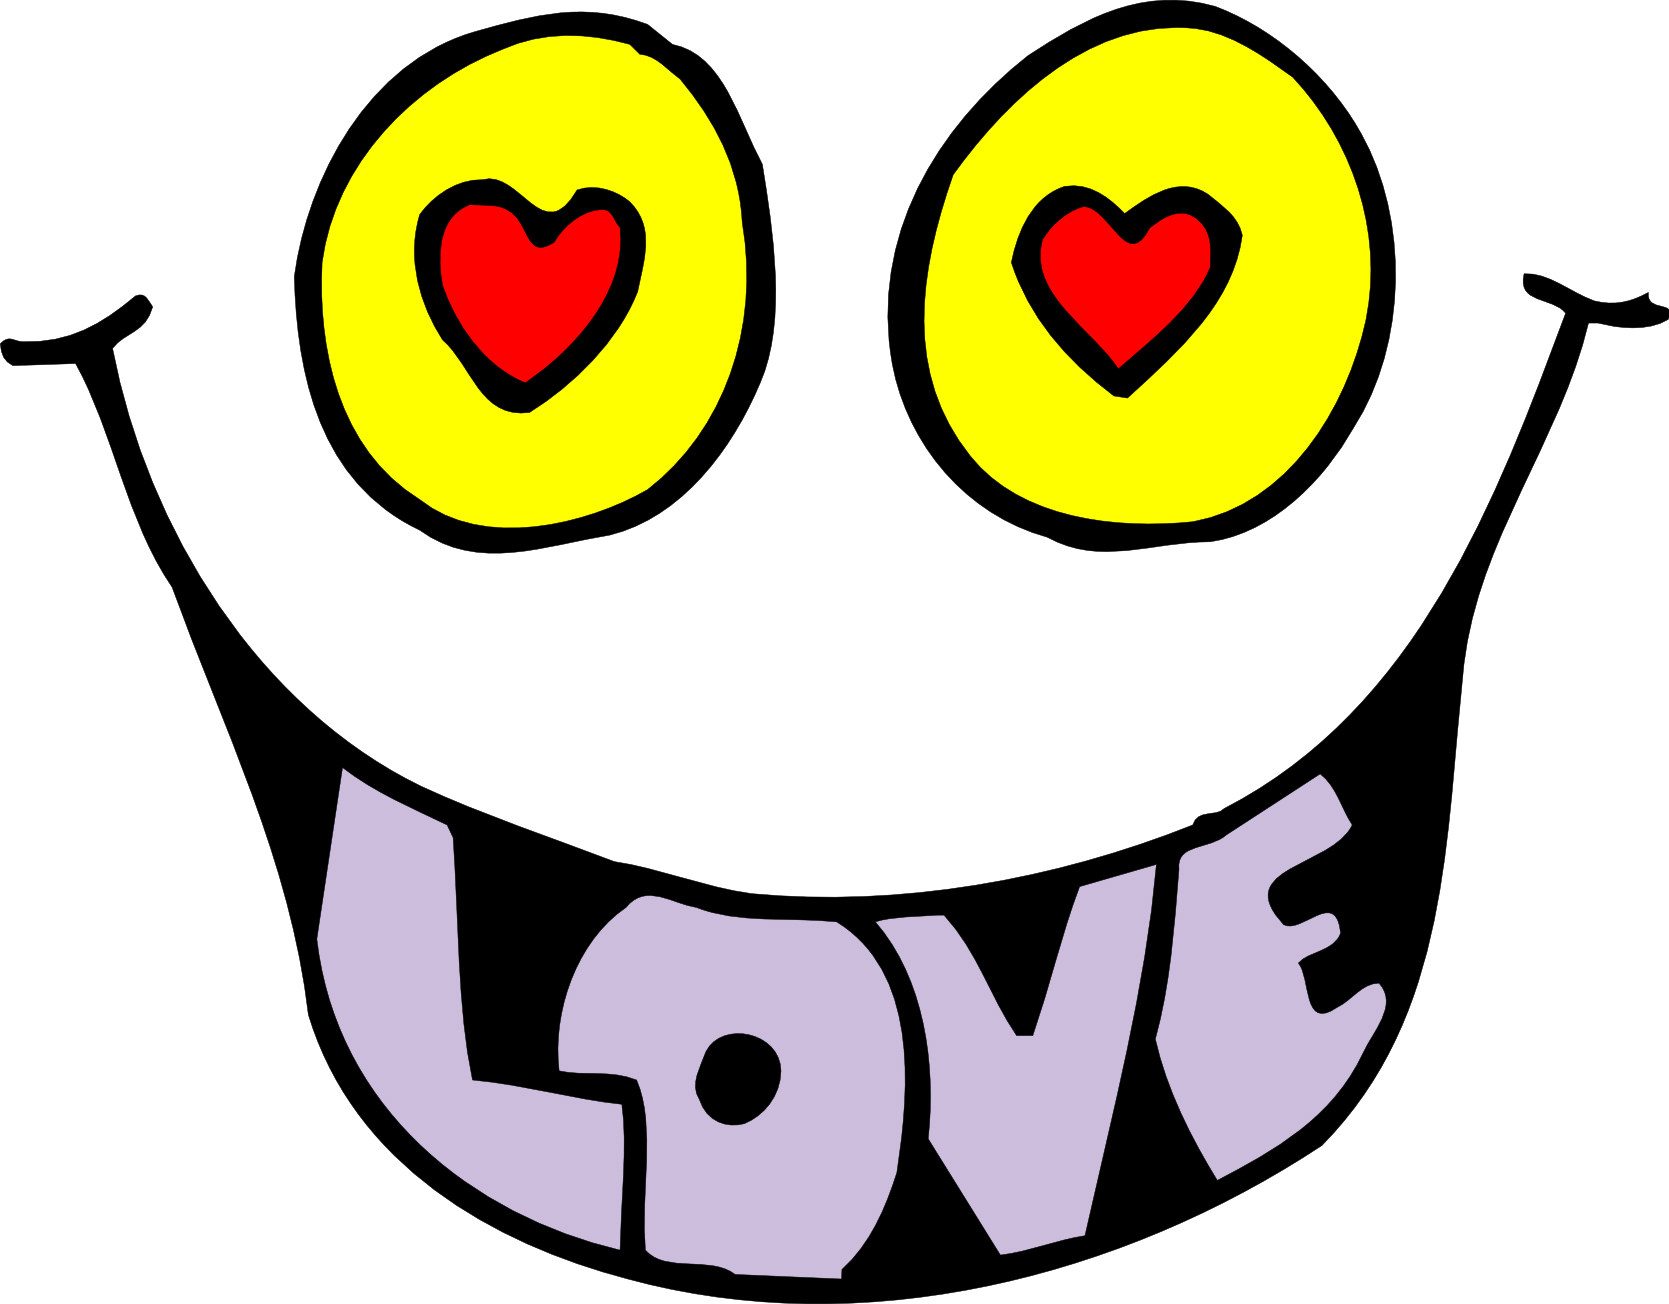 Free love cliparts download. Eyes clipart outline